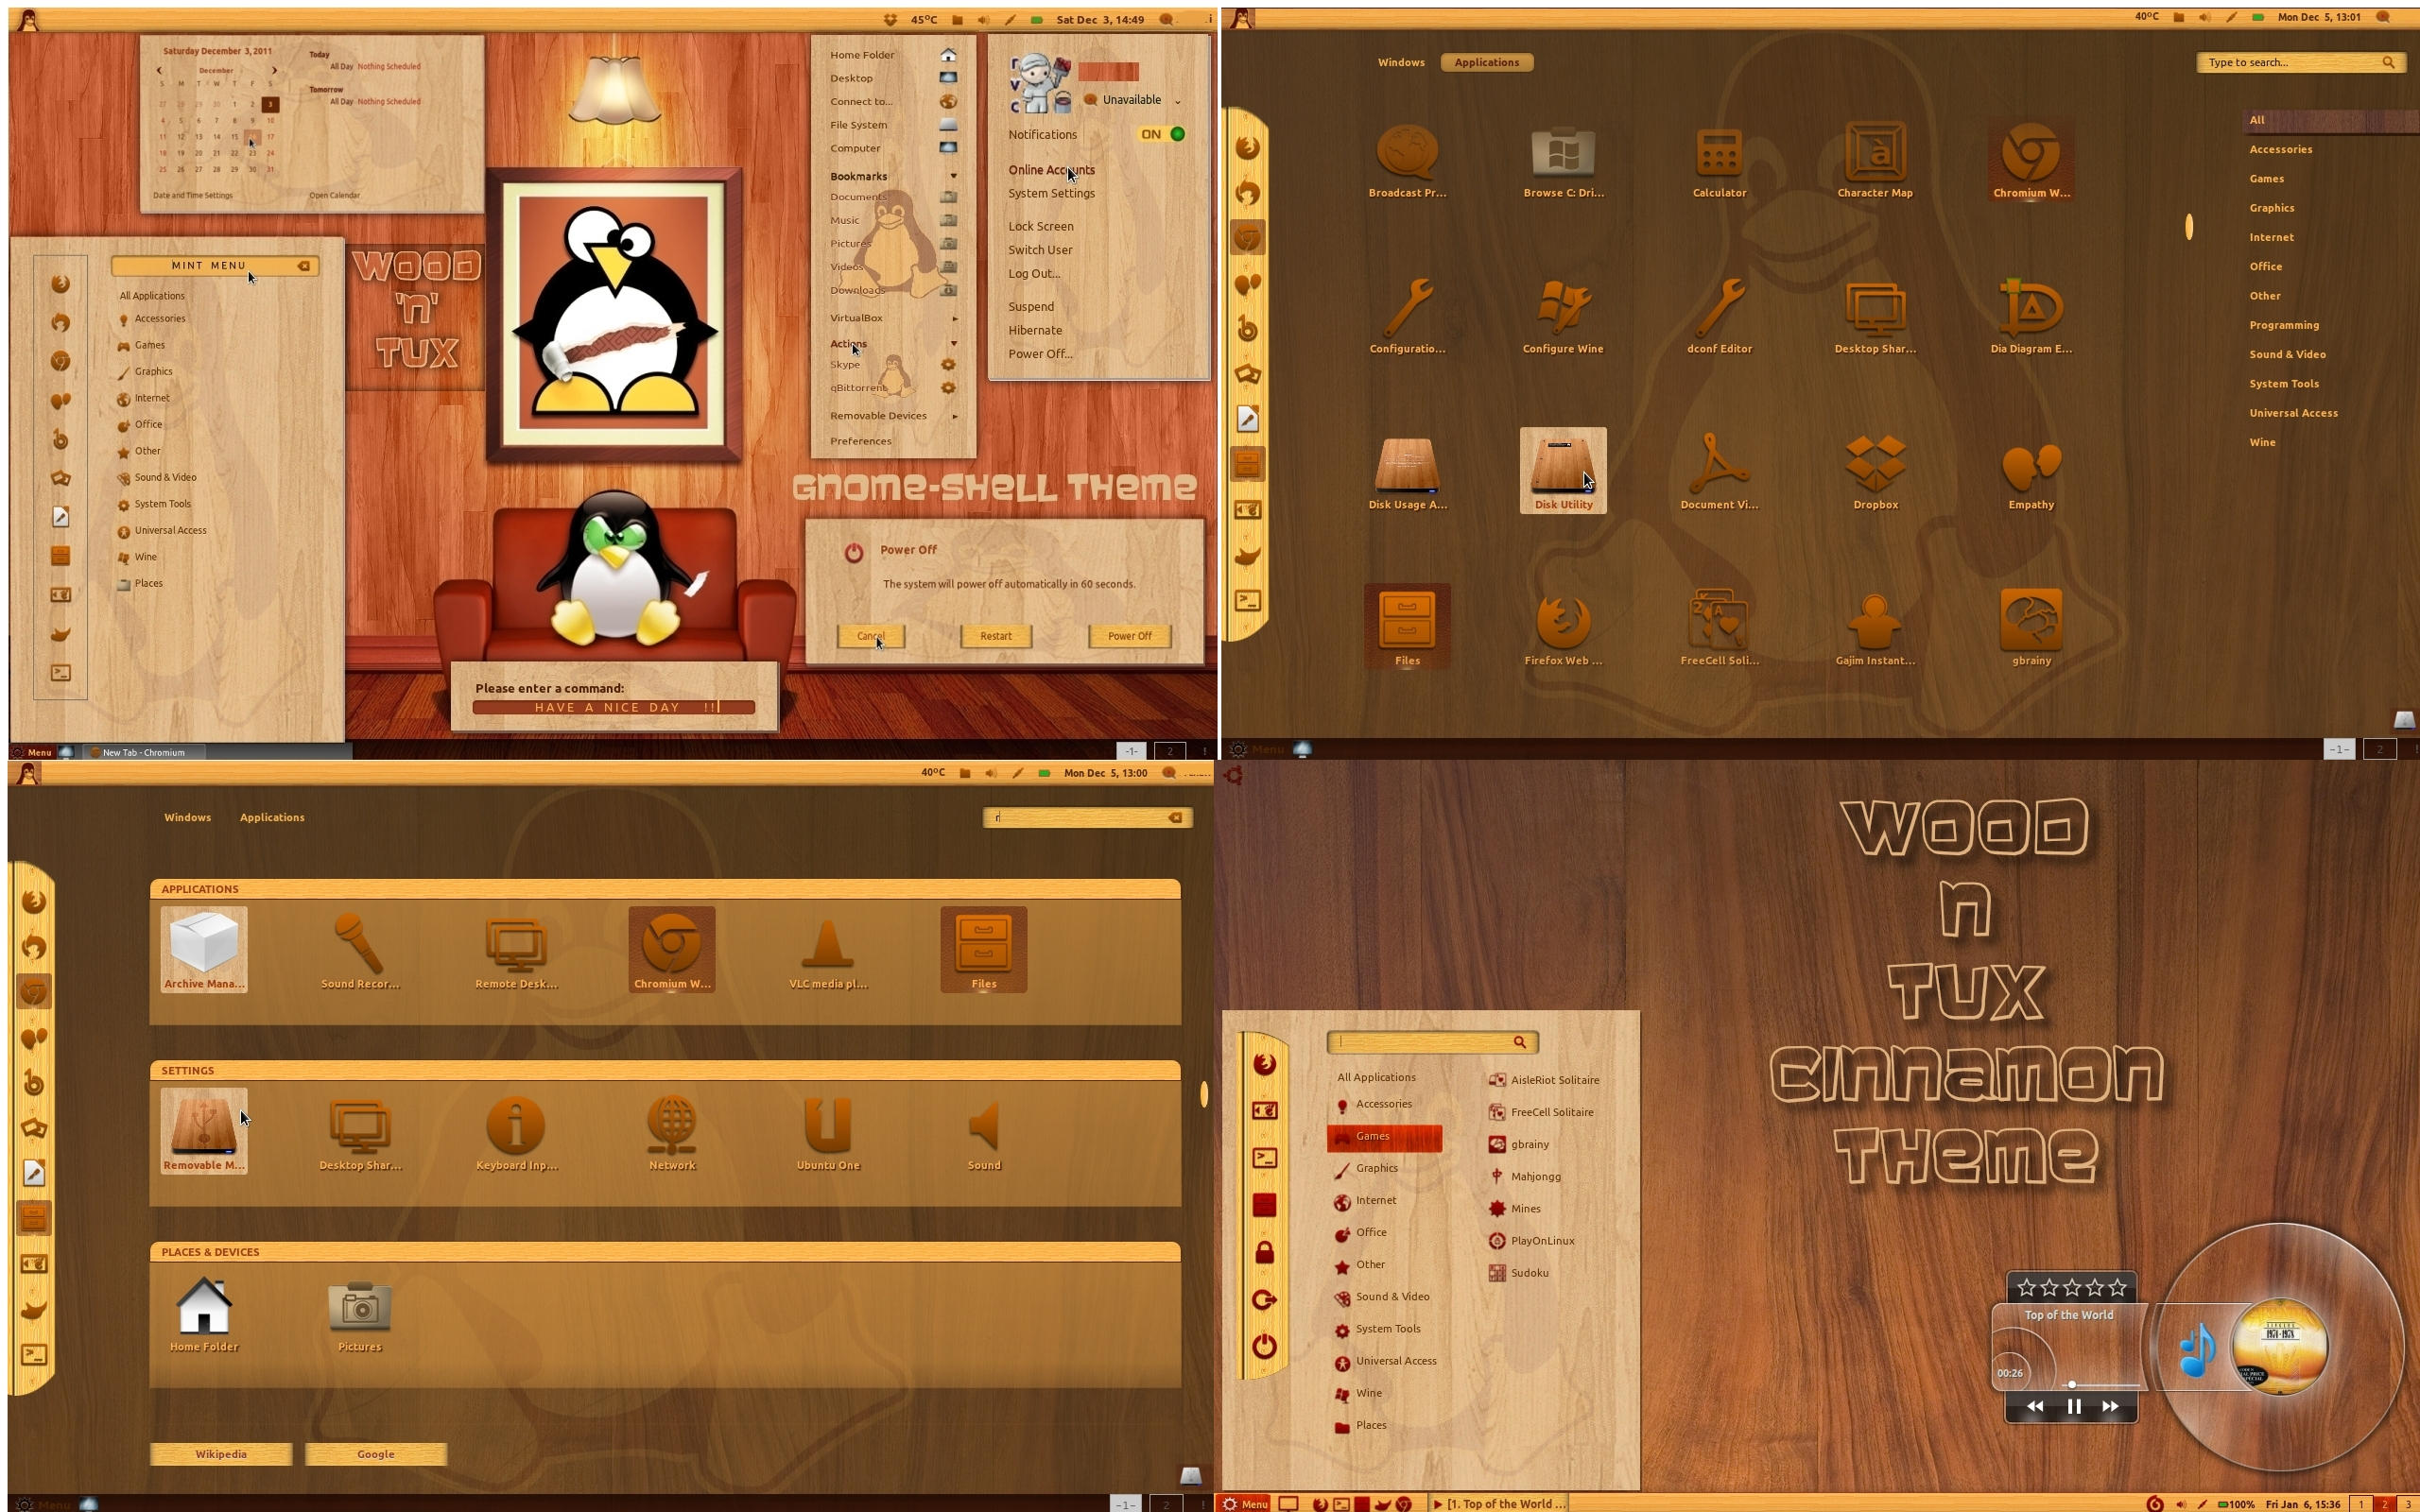 Wood 'n' Tux - Gnome Shell and Cinnamon Theme by rvc-2011